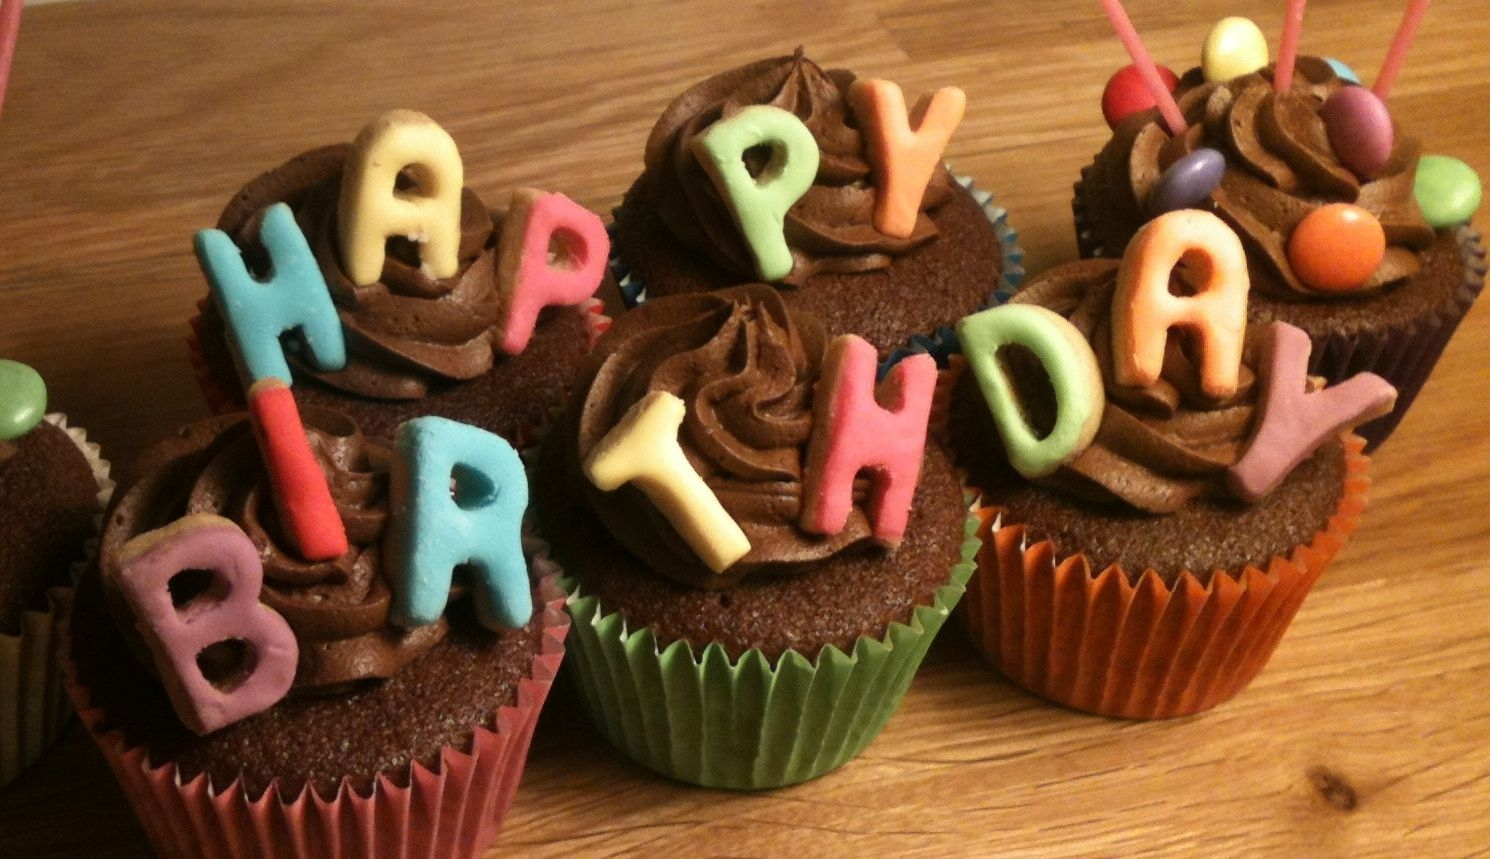 happybirthdaycupcakes-1.jpg